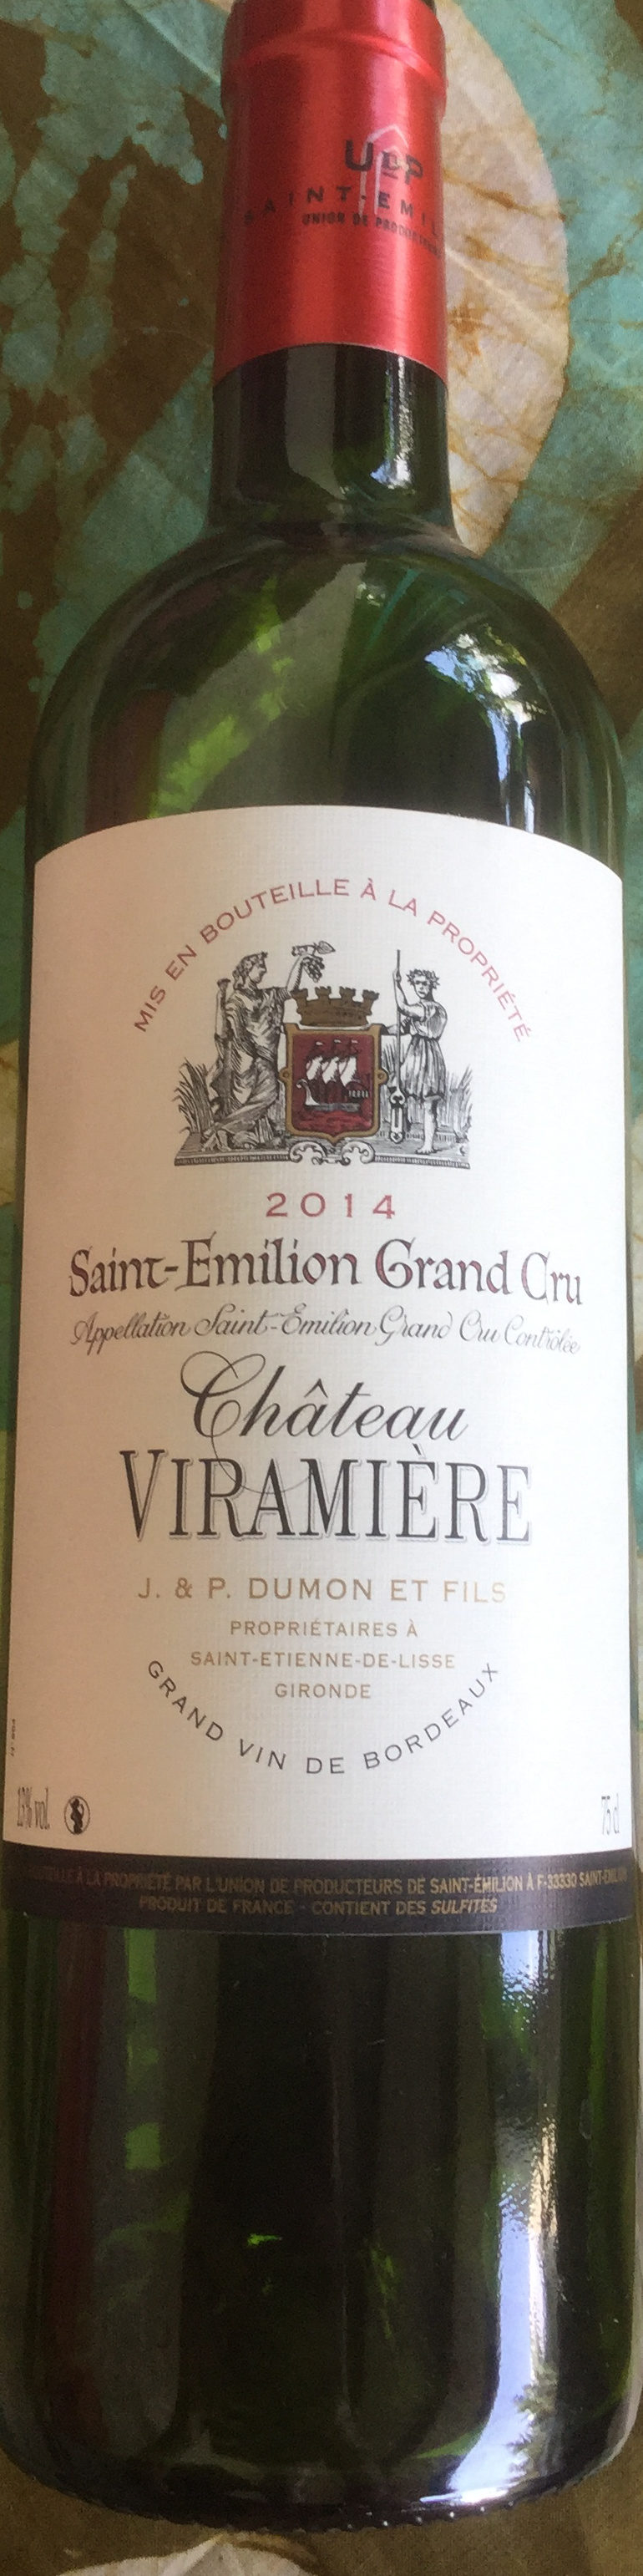 Saint-Emilion Grand Cru 2014 - Product - fr